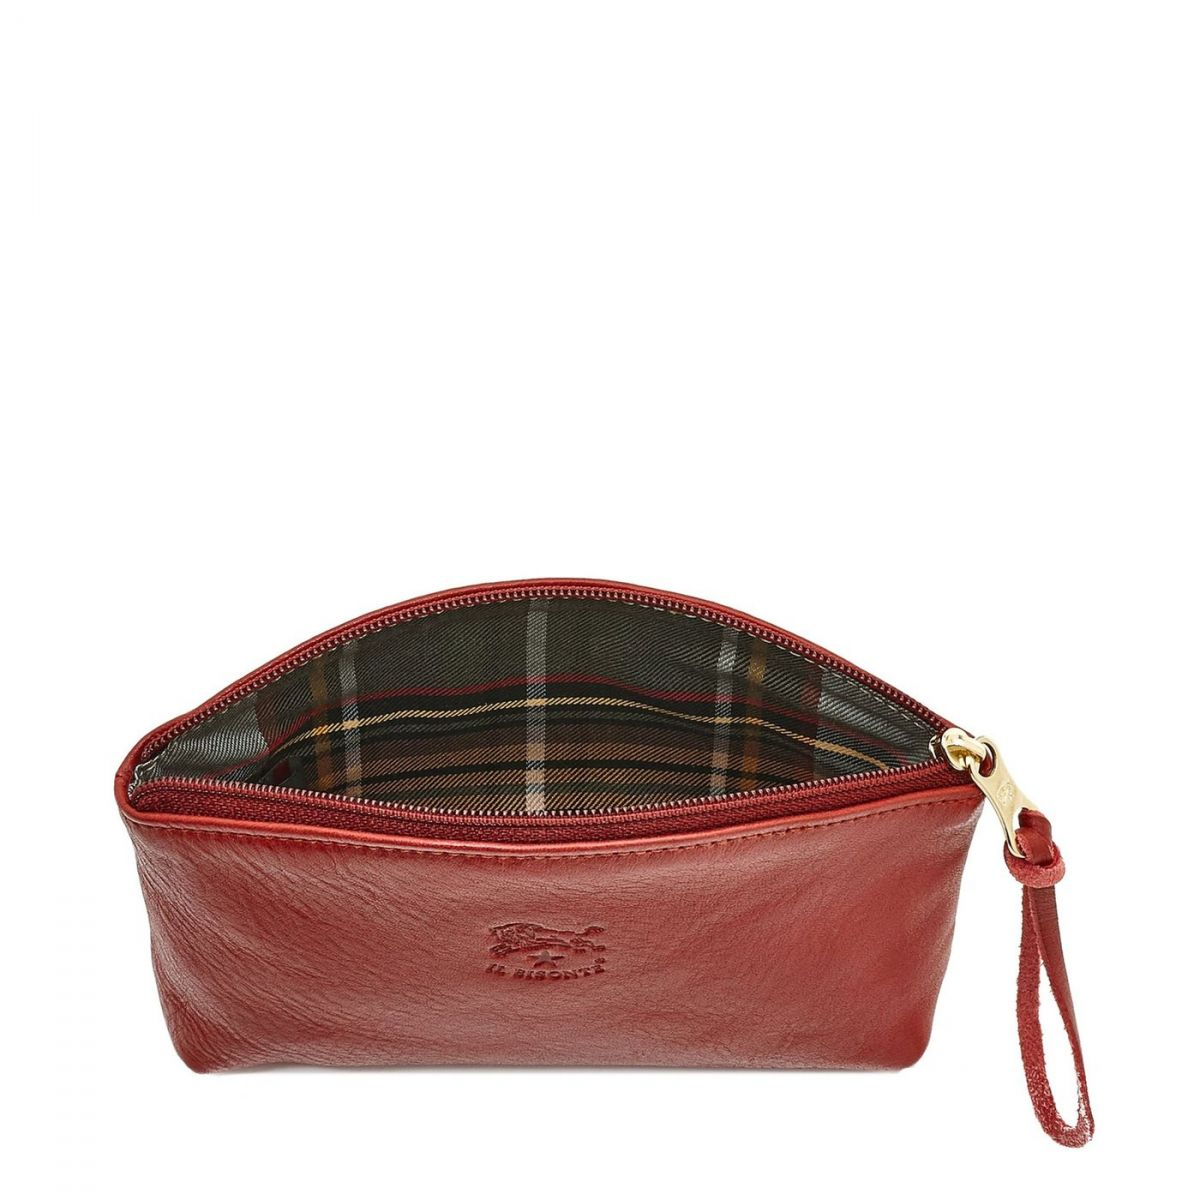 Women's Case in Cowhide Double Leather color Red - SCA014 | Details